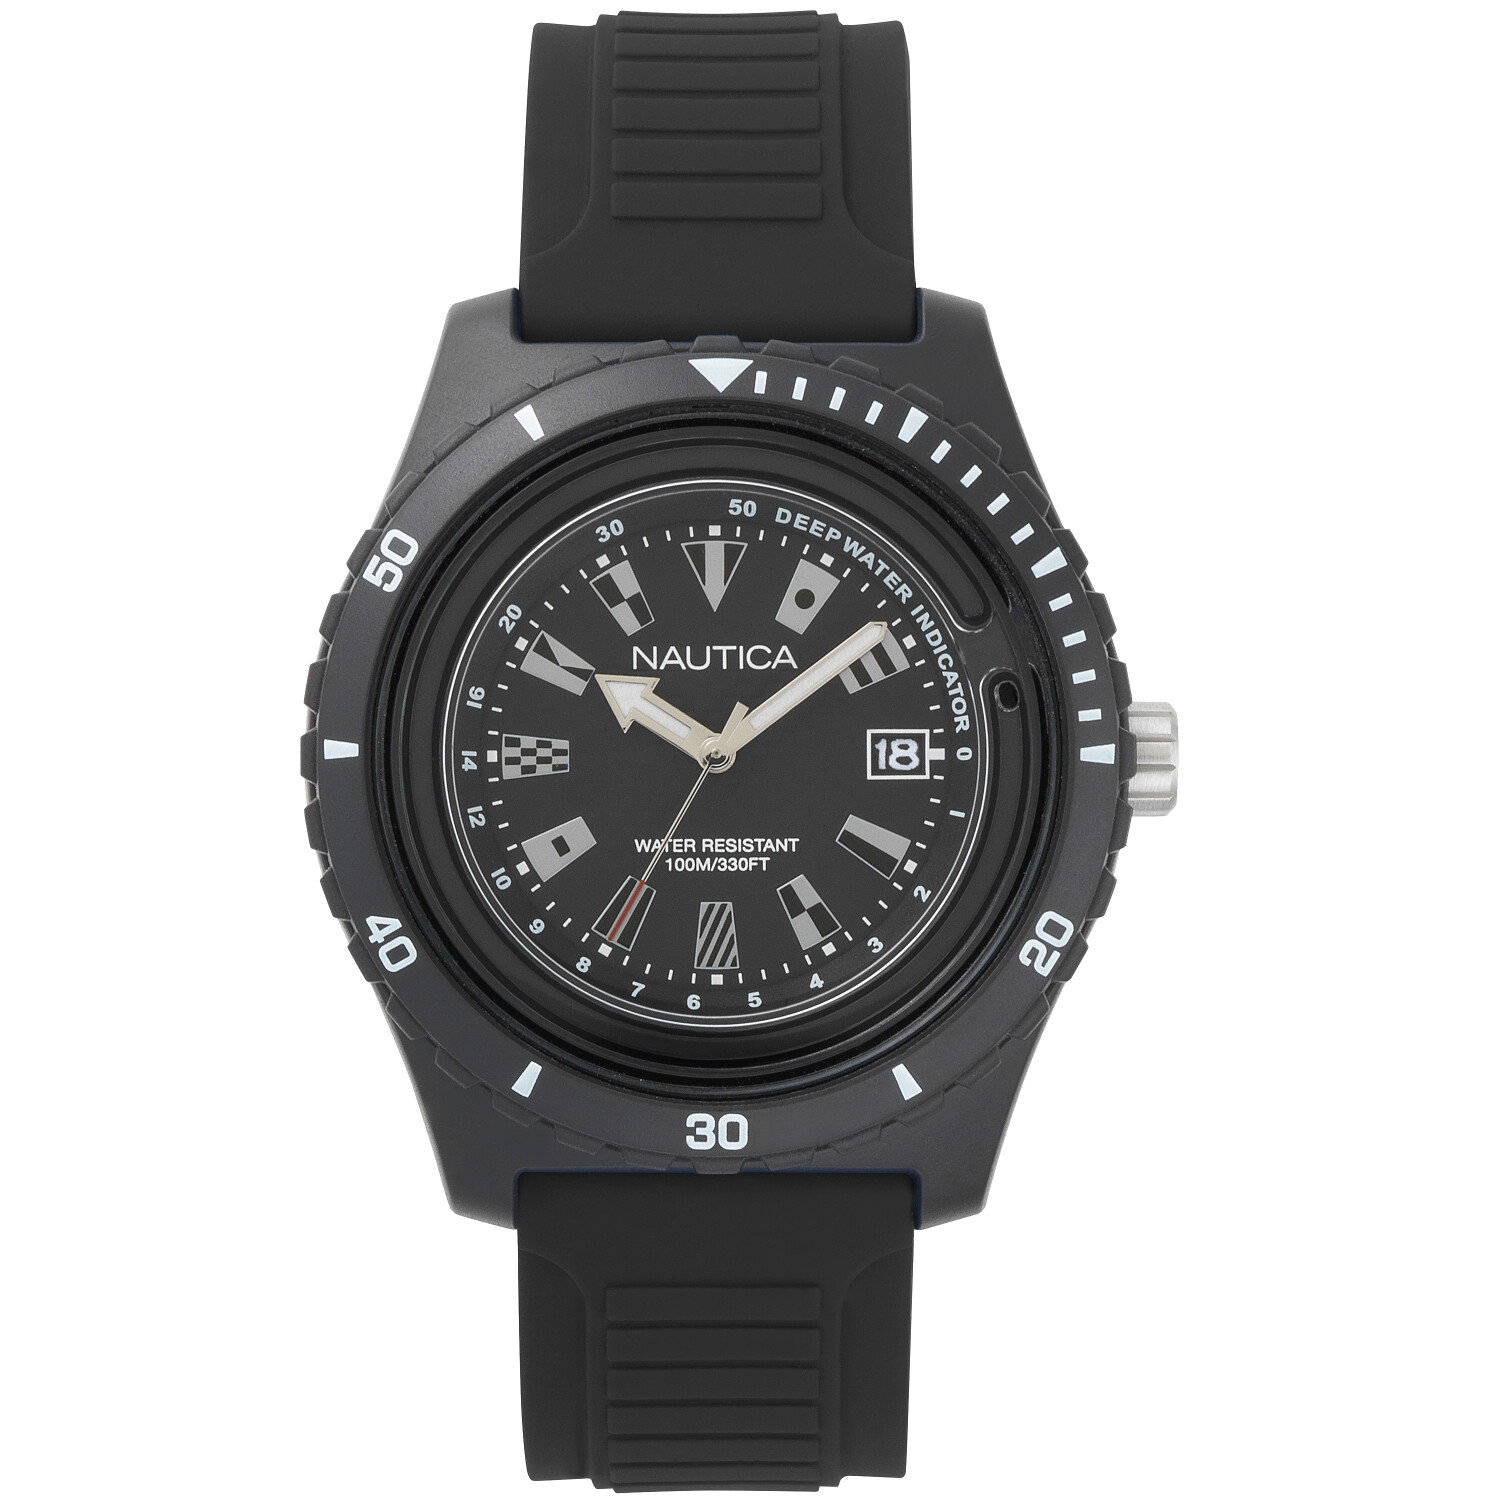 Nautica Watch NAPIBZ007 Ibiza, Analog, Water Resistant, Silicone Band, Adjustable Buckle, Deep Water Indicator, Black